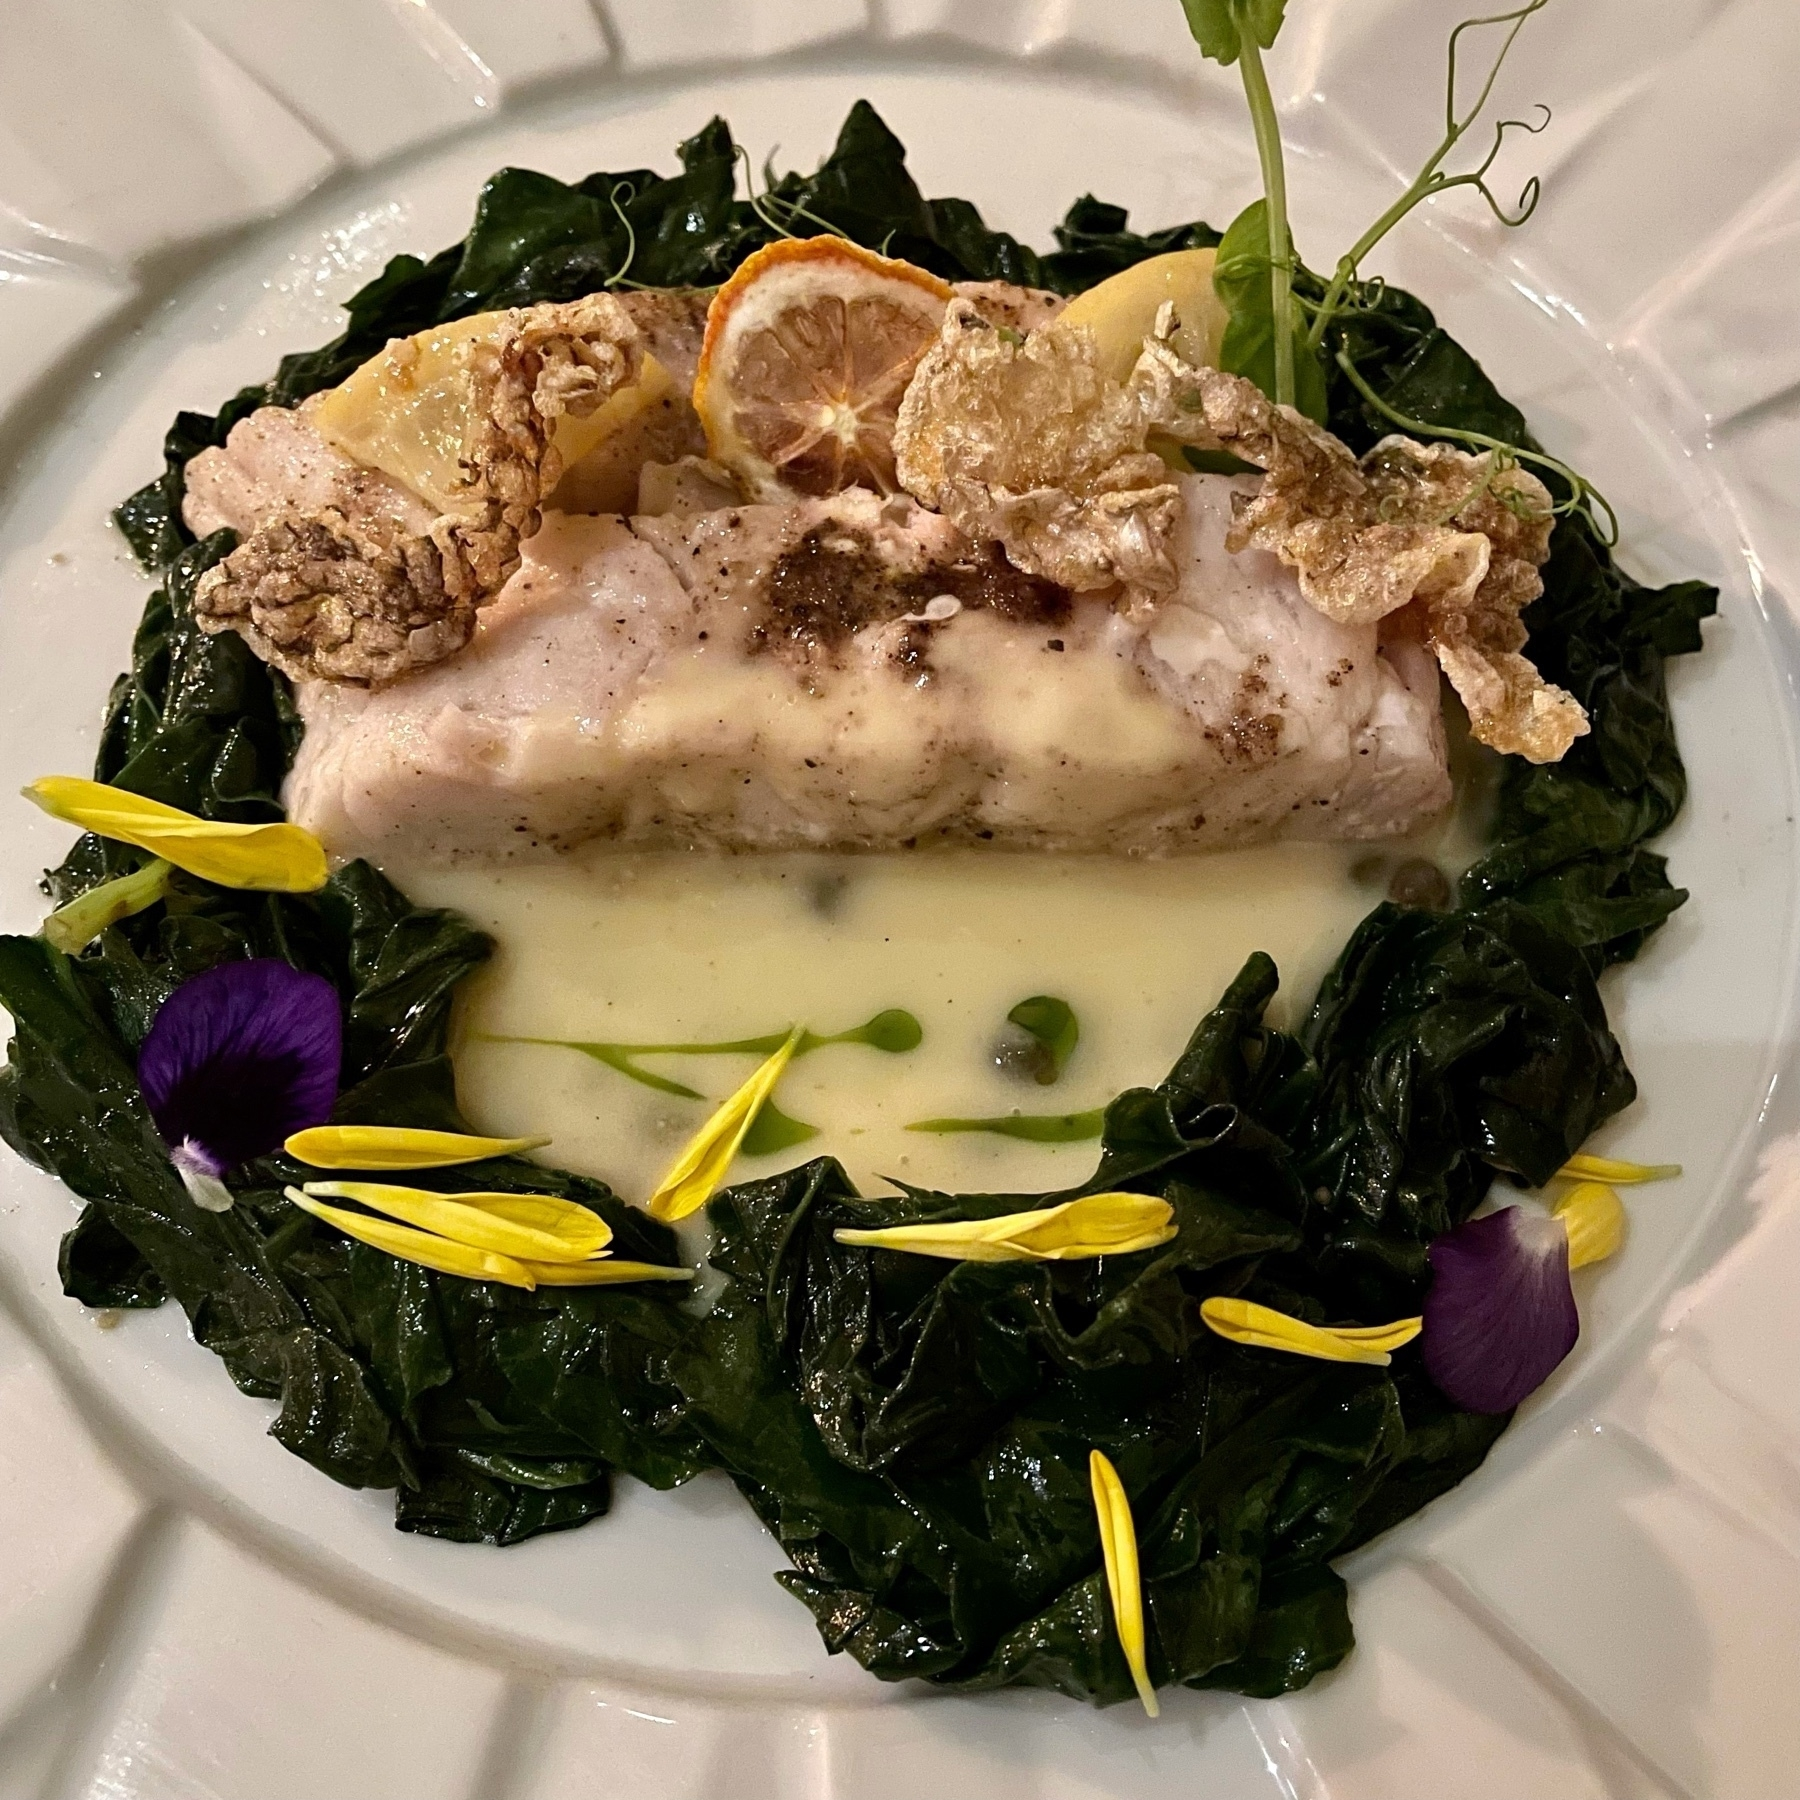 Sea bass surrounded by sautéed spinach in a beurre blanc.